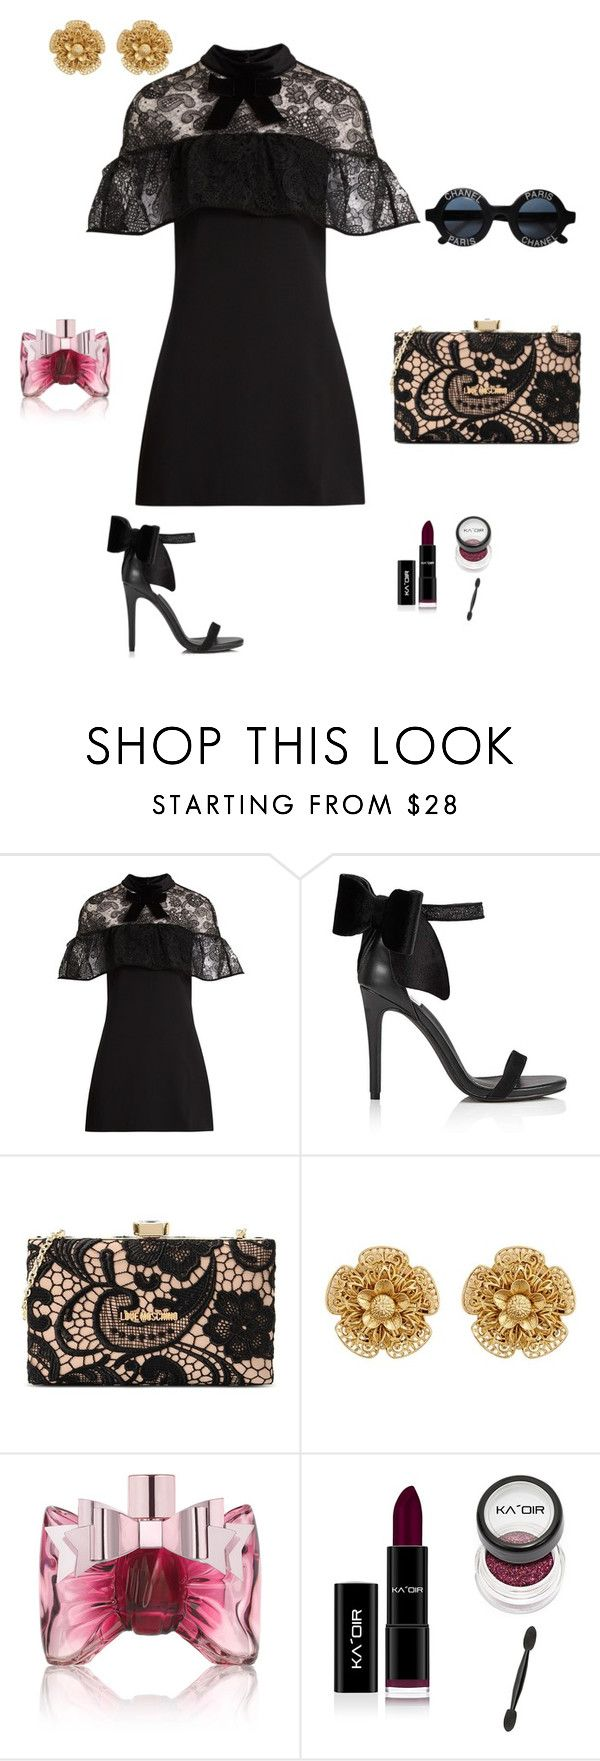 Untitled #2 by kocze-eniko on Polyvore featuring self-portrait, Miss Selfridge, Love Moschino, Miriam Haskell, Chanel and Viktor & Rolf